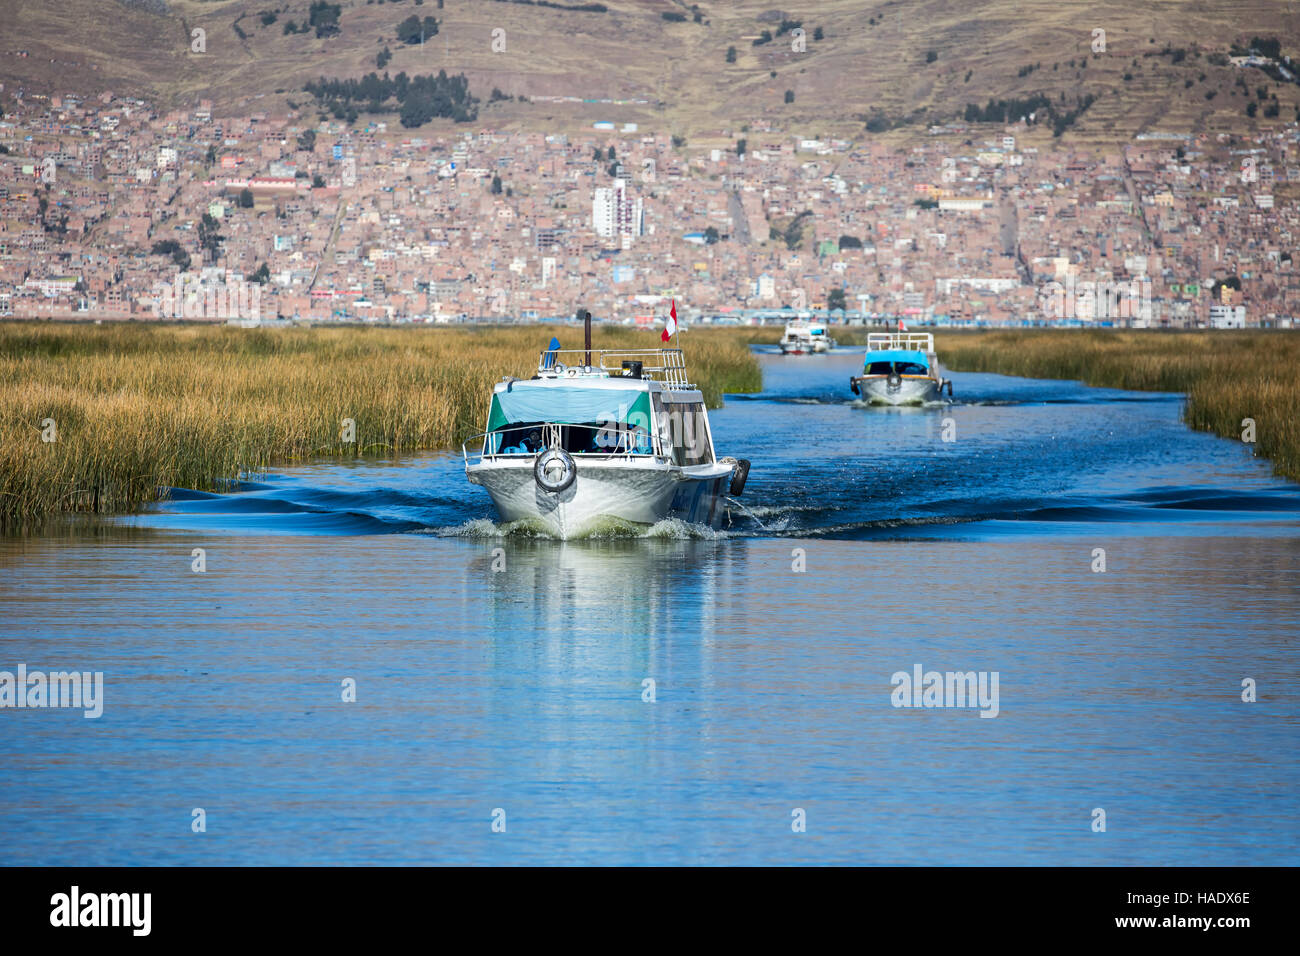 Tourist boats on Lake Titicaca flanked by totora reed fields, City of Puno in background, Puno, Peru - Stock Image